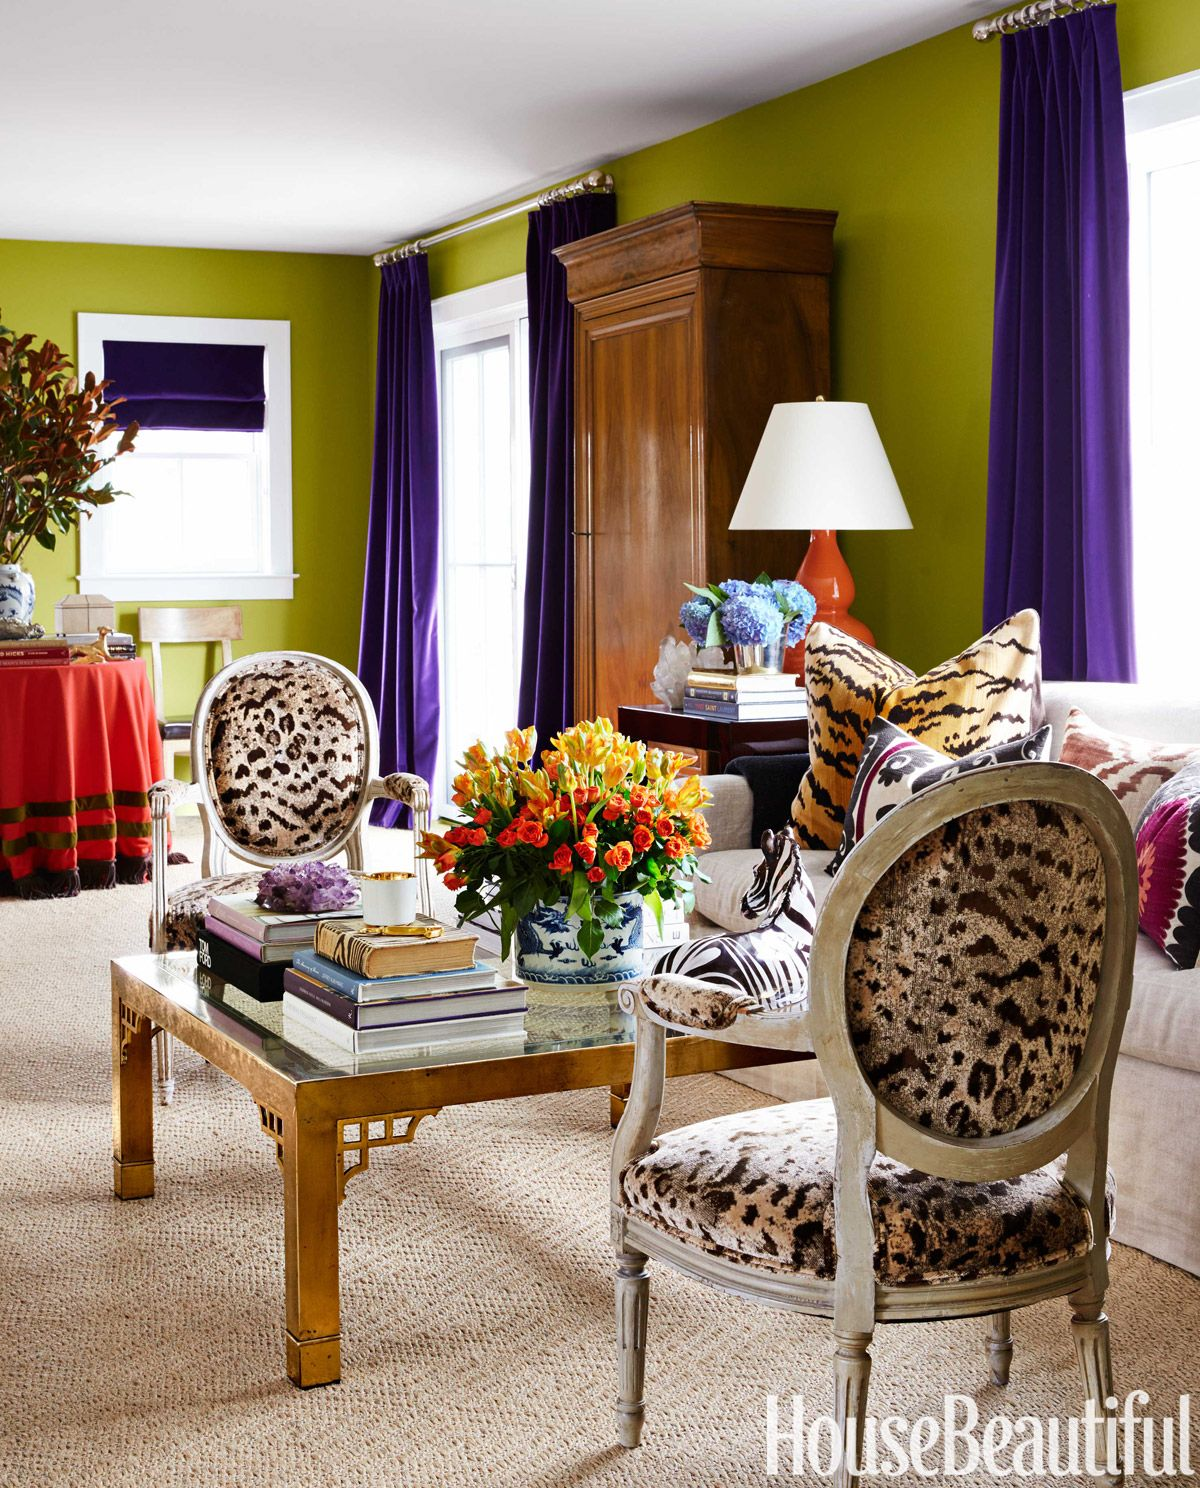 7 Classic Decorating Lessons That Will Transform Any H